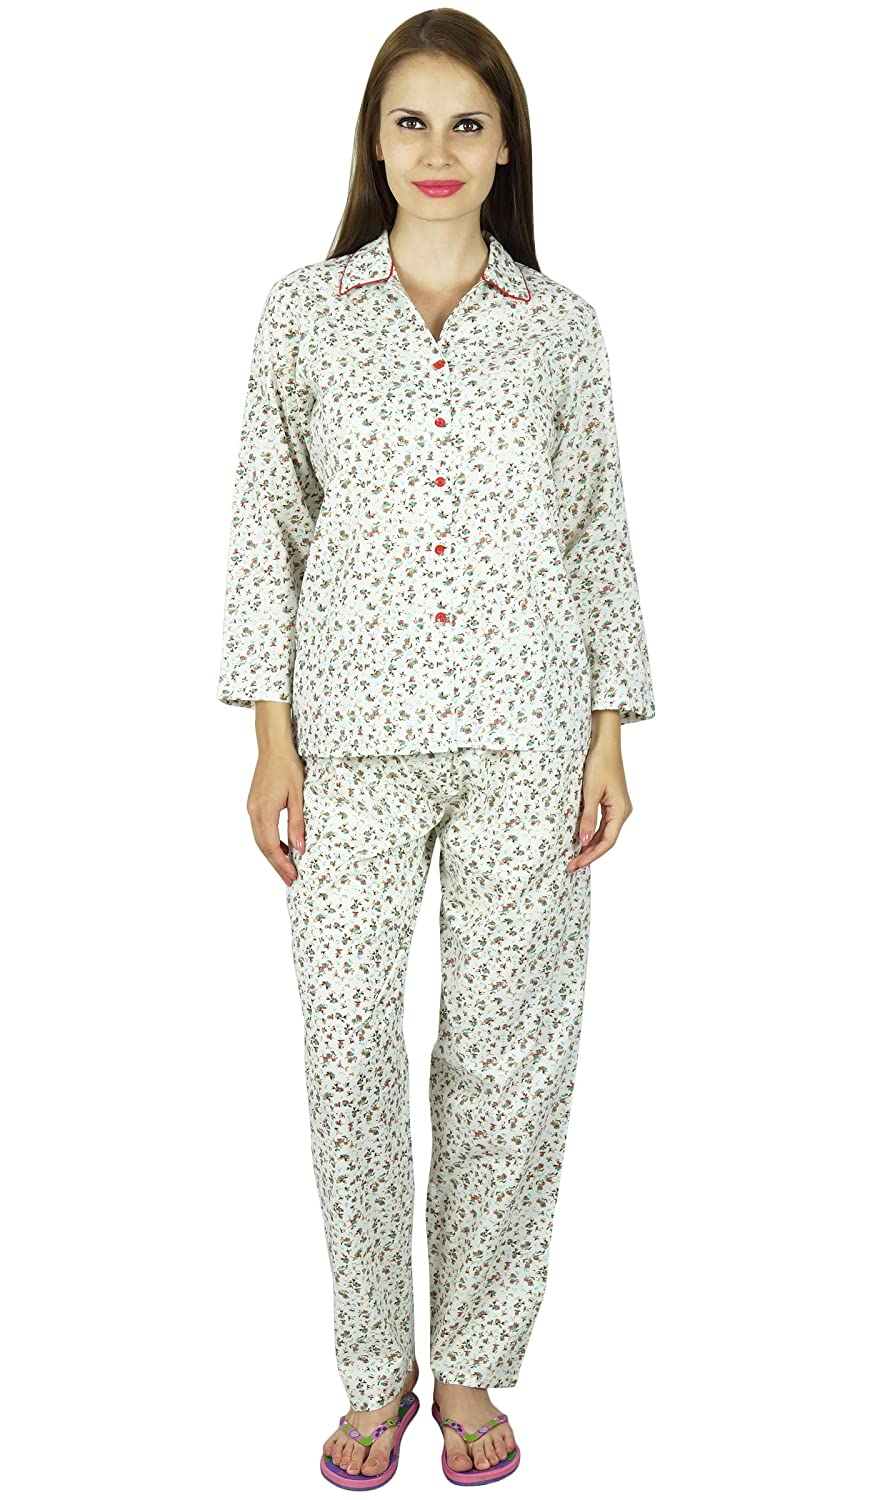 e987e1128d Bimba Women White Cotton Night Wear Pajama Set Full Sleeve Shirt with  Pyjamas at Amazon Women s Clothing store